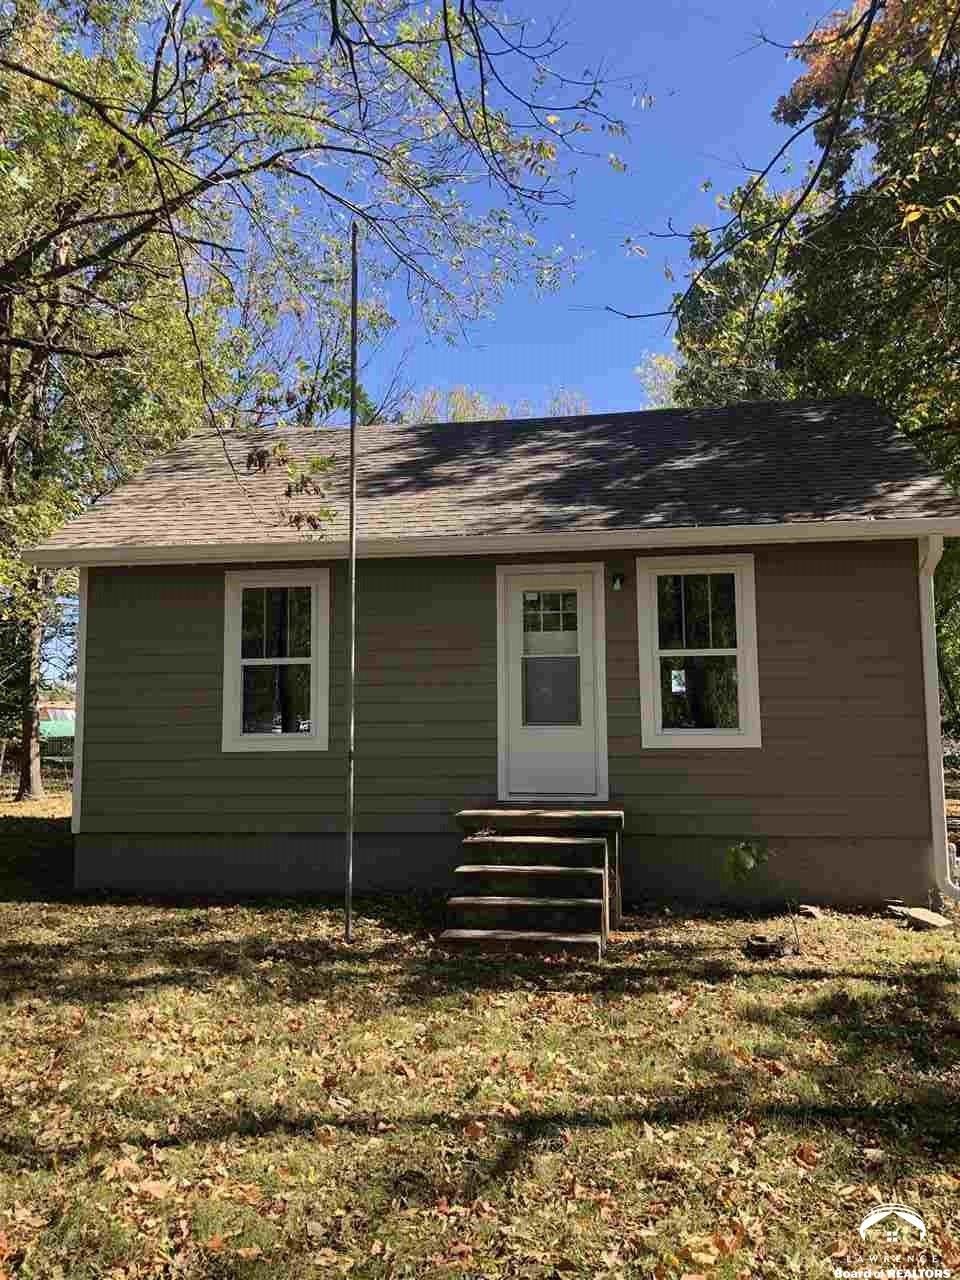 1718 Harper, Lawrence, Kansas 66046, 2 Bedrooms Bedrooms, ,1 BathroomBathrooms,Residential,For Sale,Harper,152889